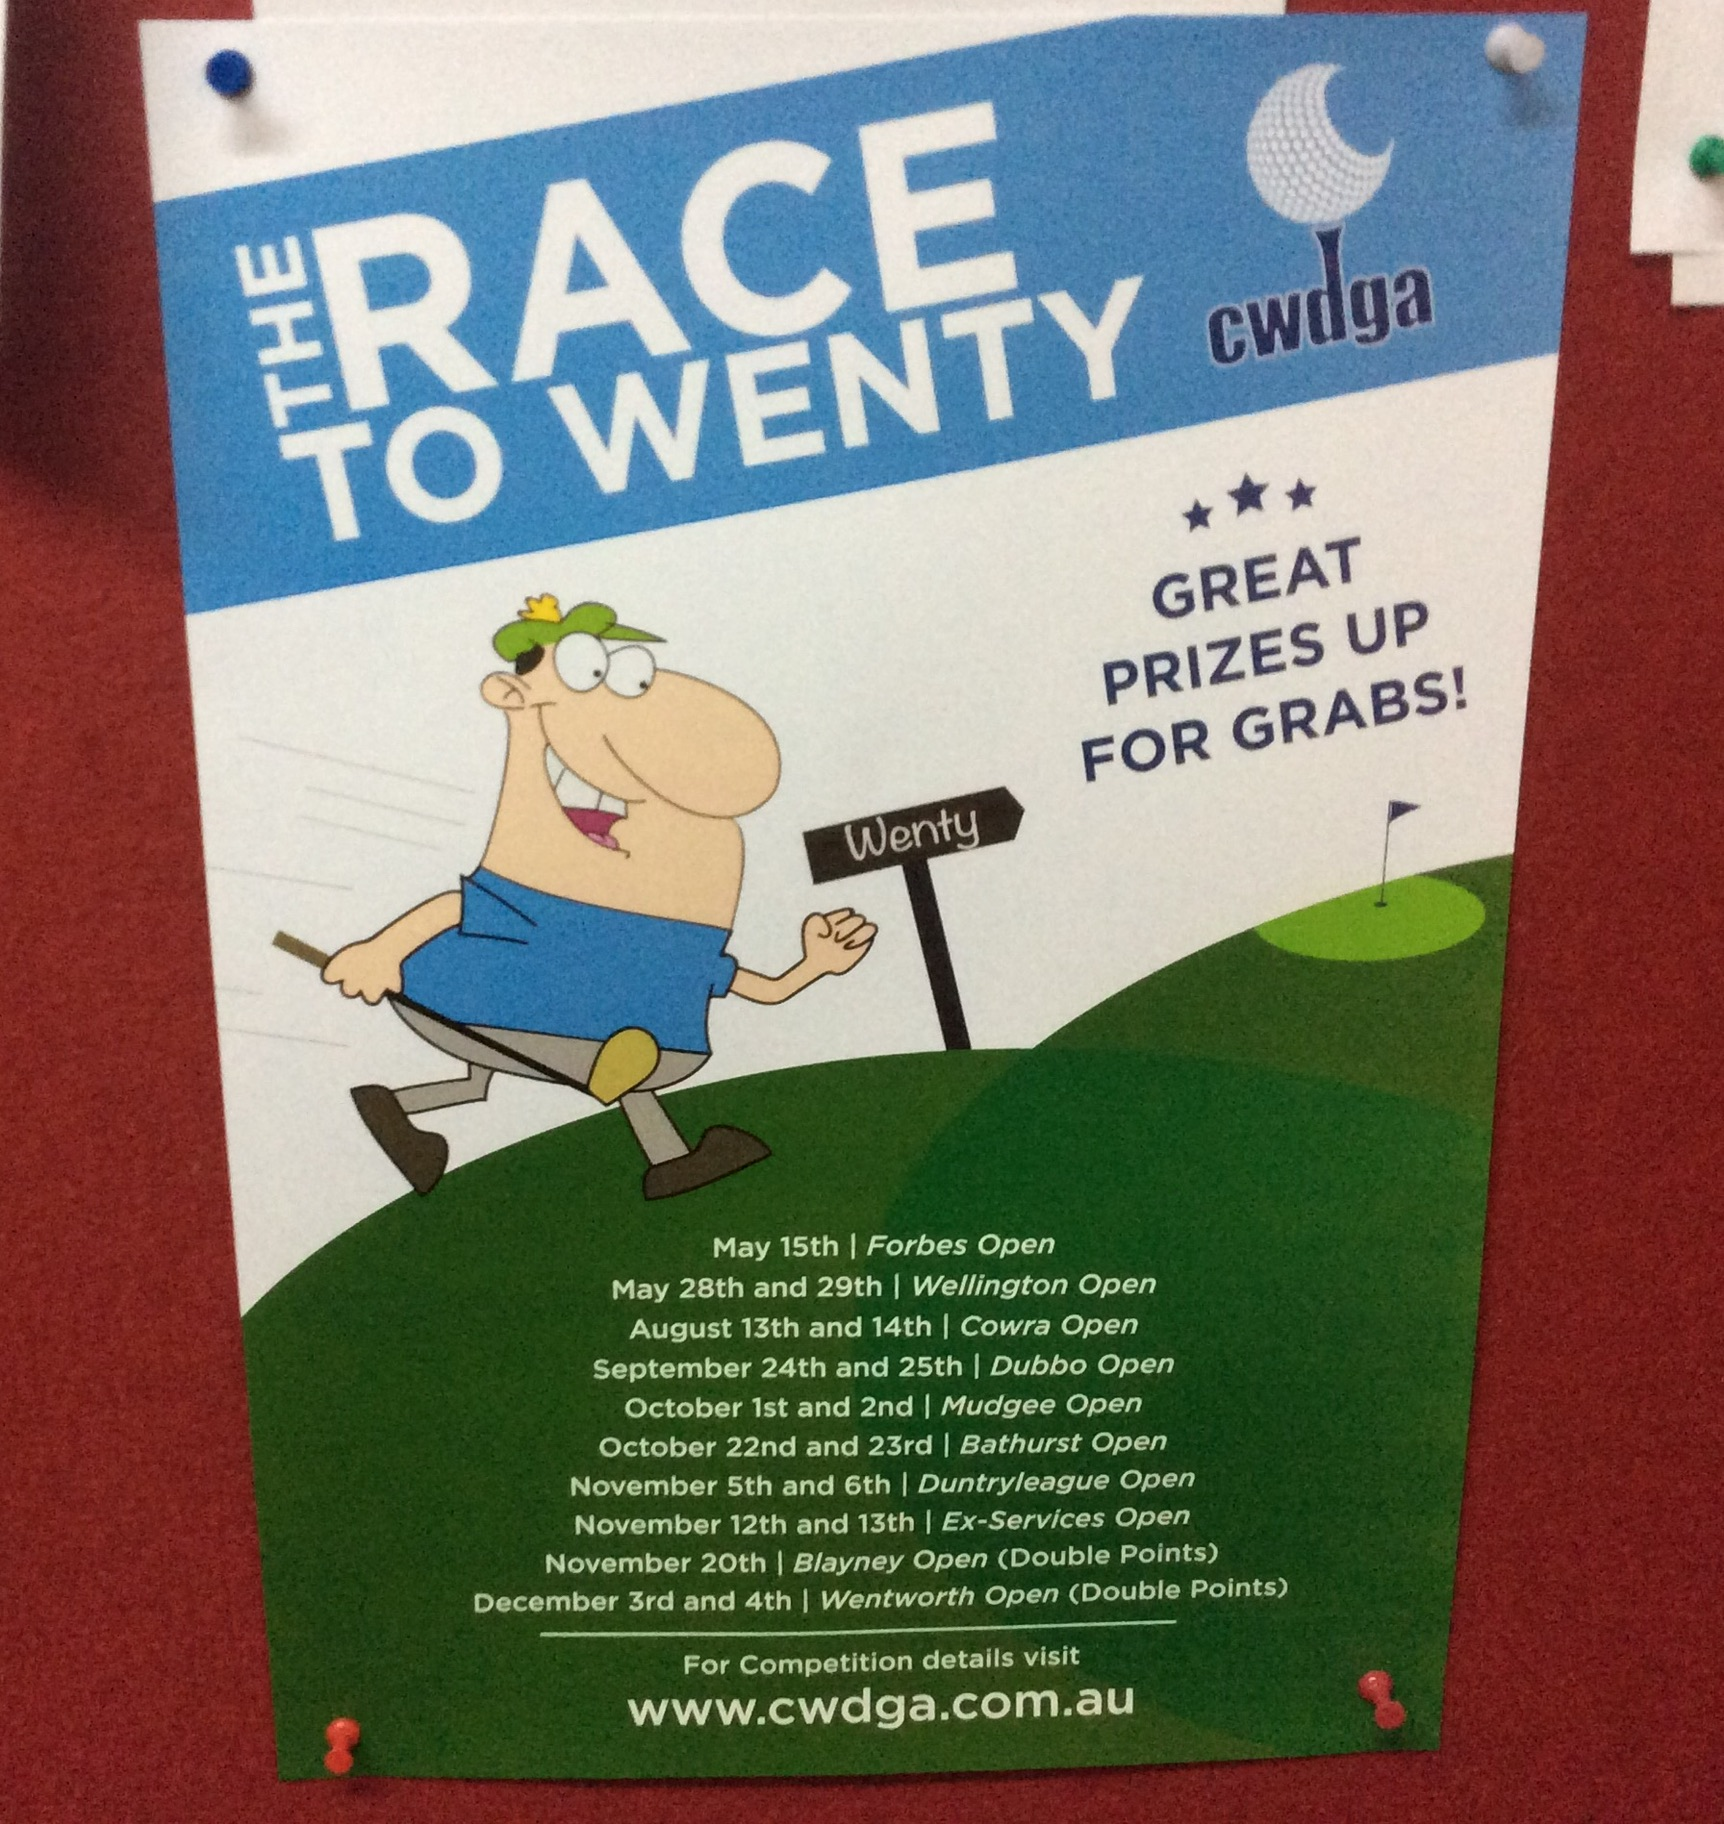 The Race to Wenty Gallery